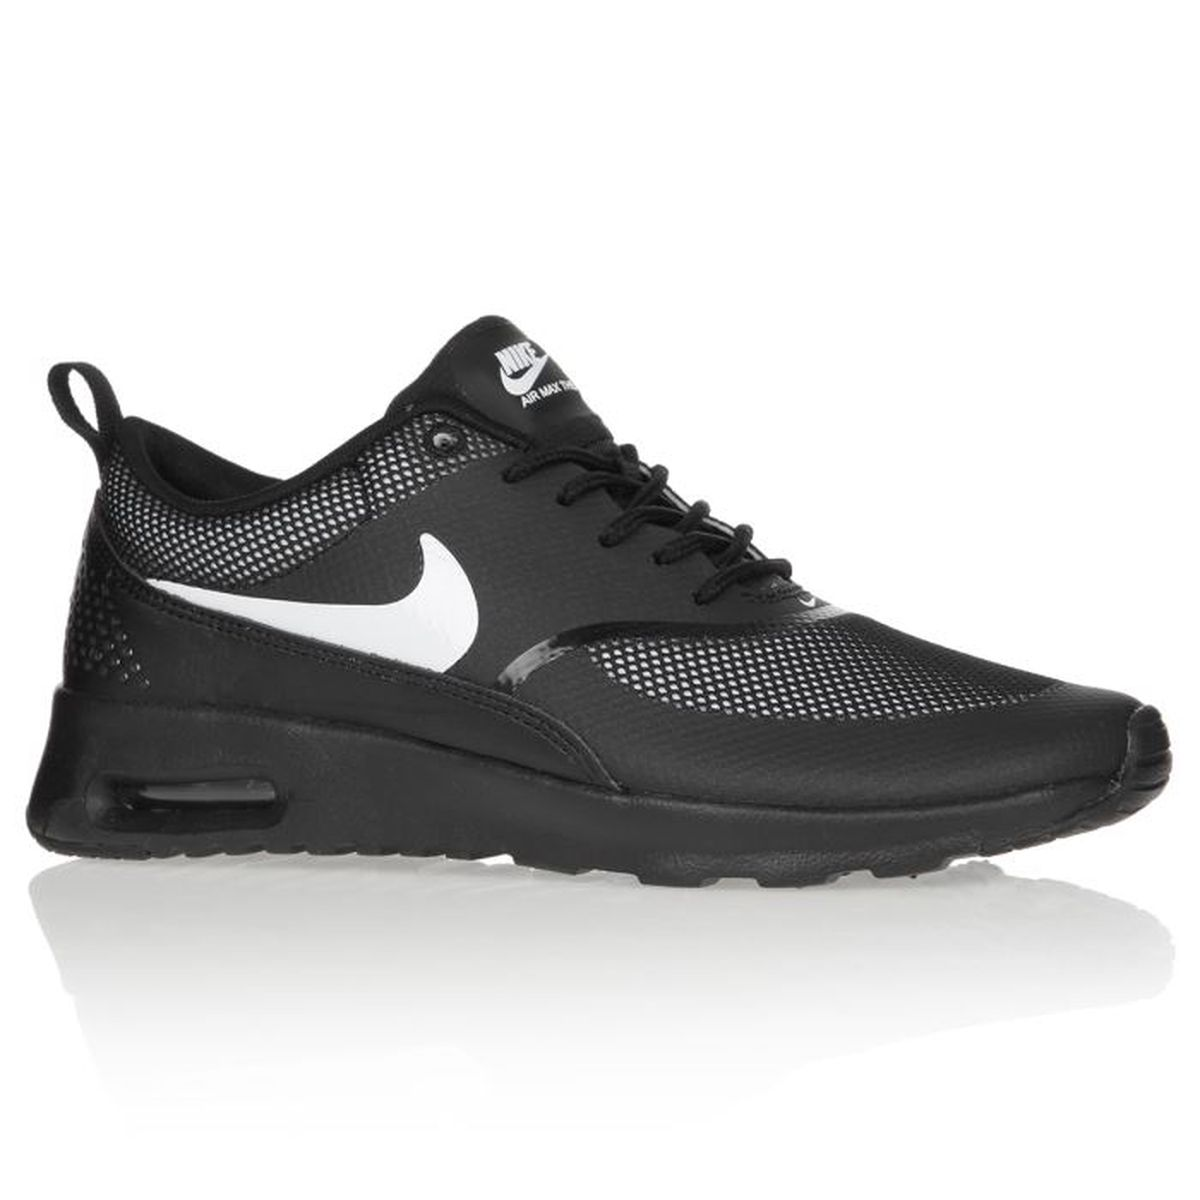 nike baskets air max thea femme femme noir achat vente nike baskets femme femme pas cher. Black Bedroom Furniture Sets. Home Design Ideas